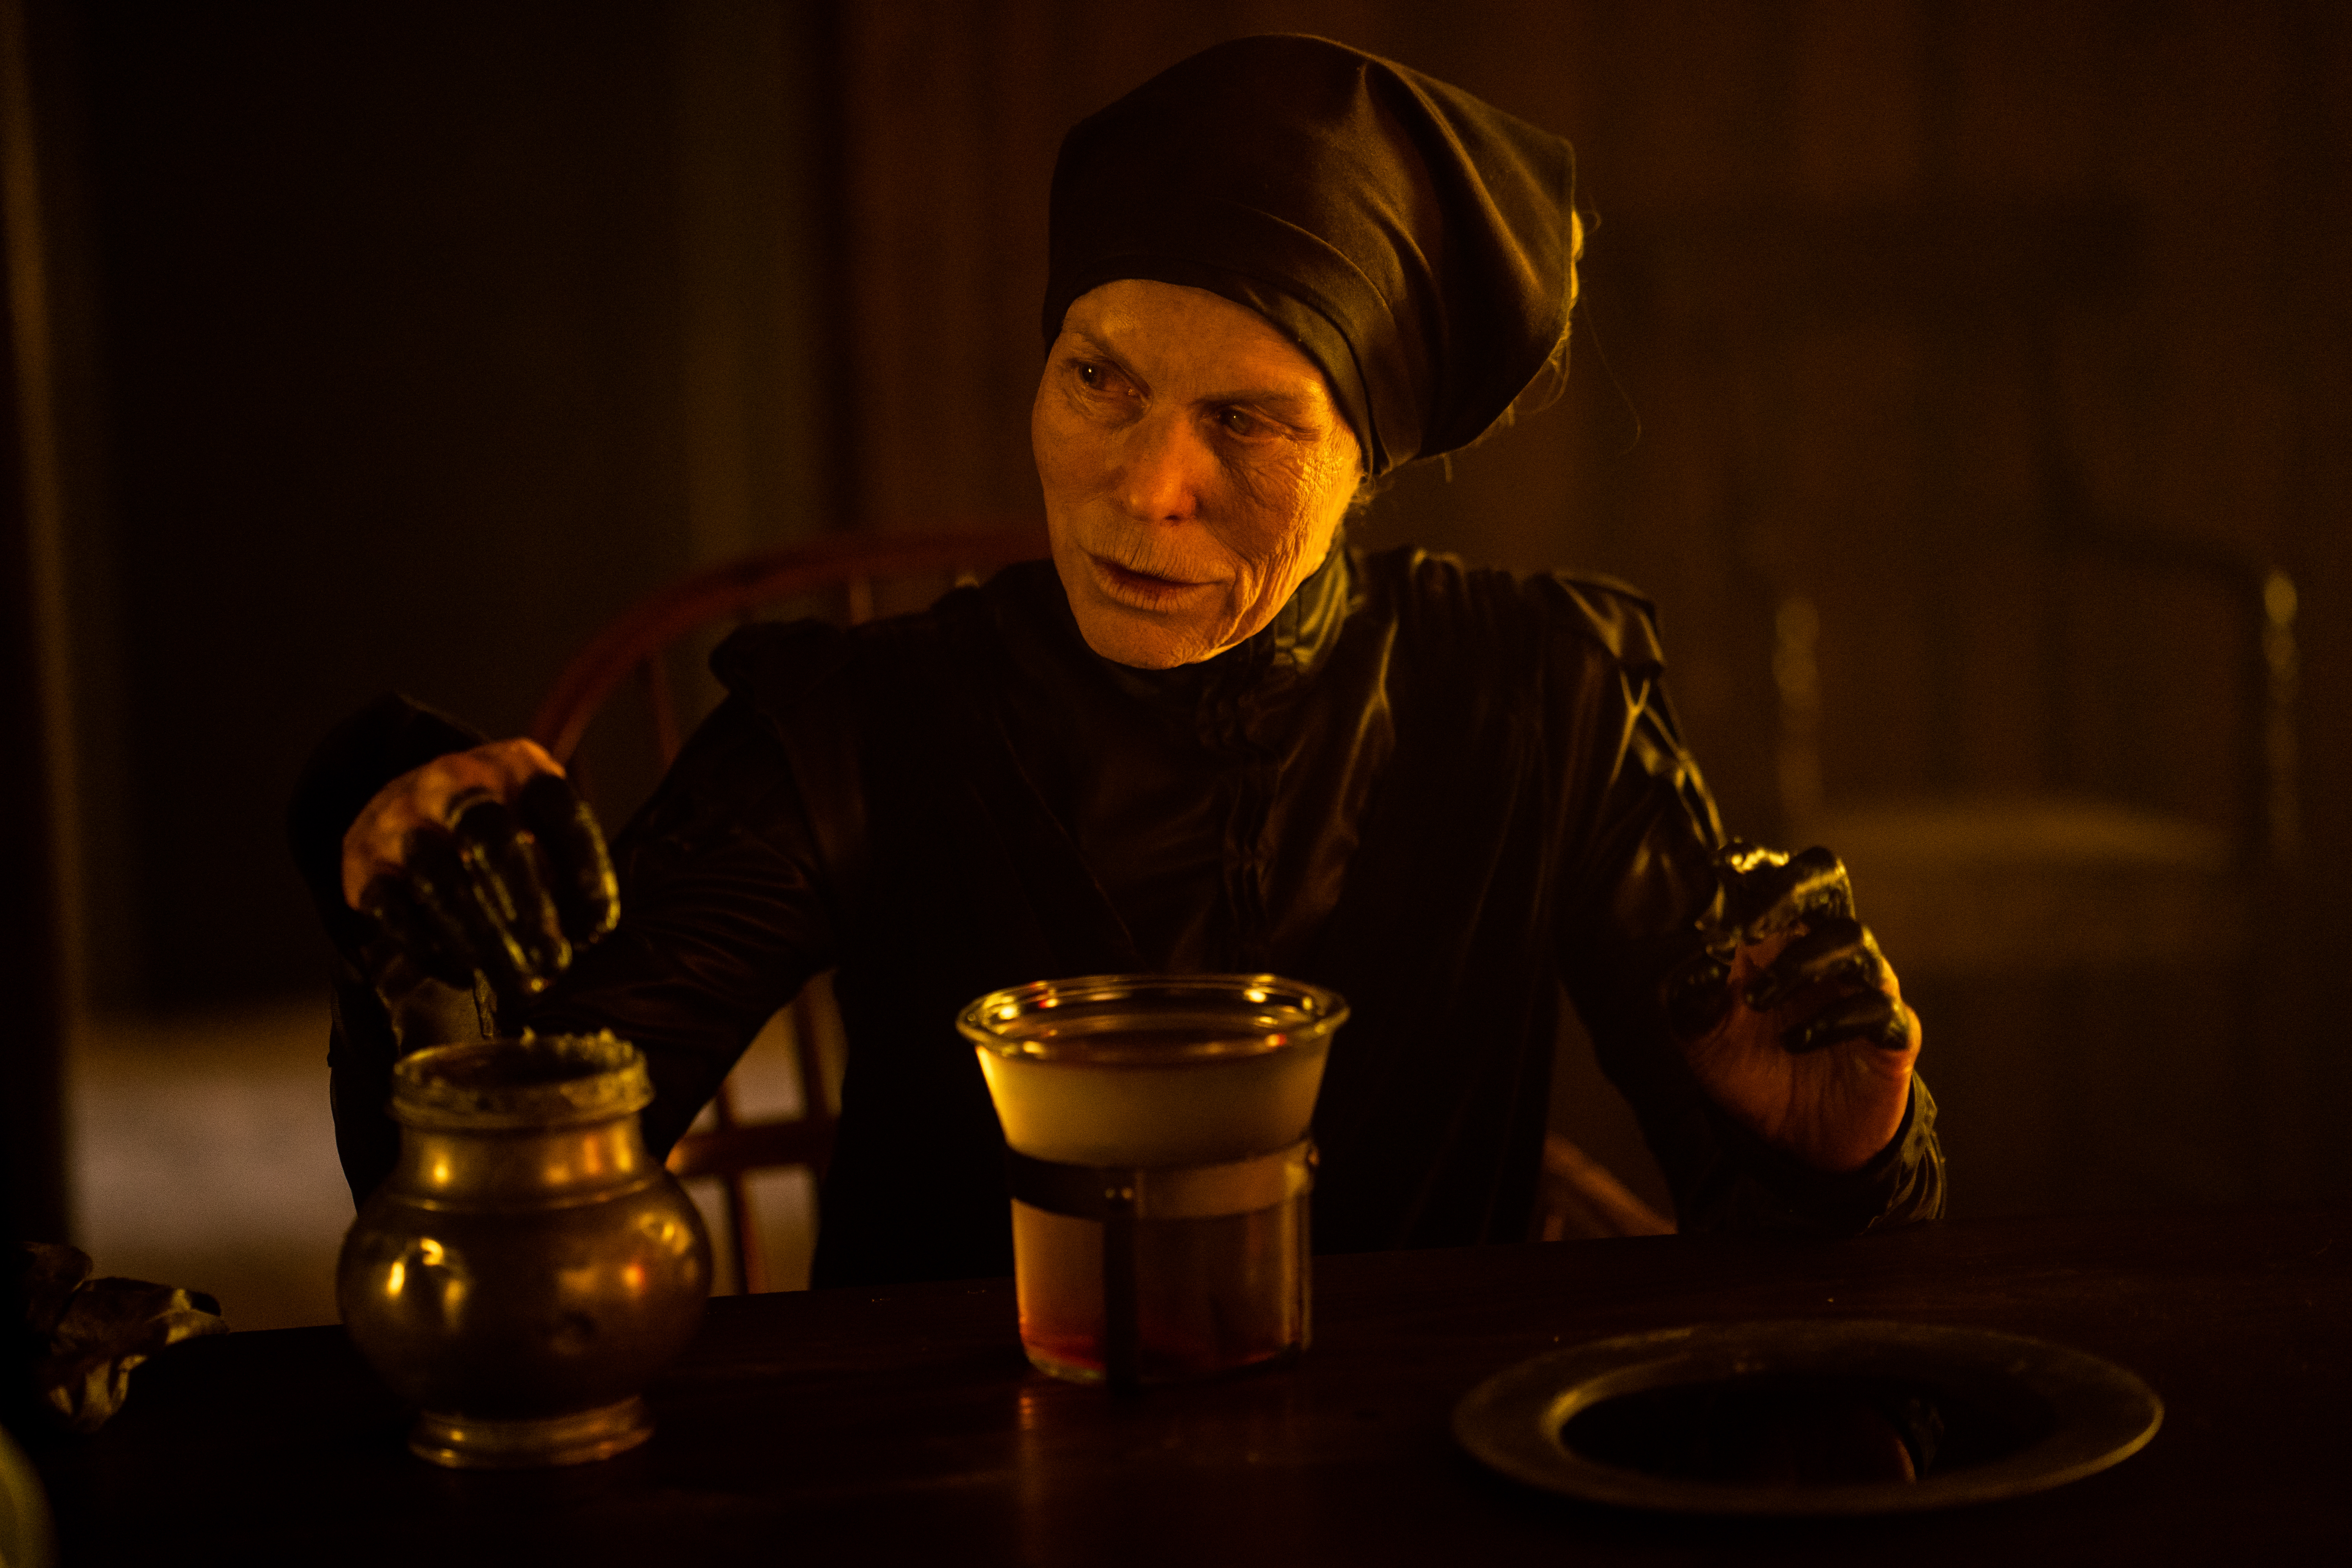 The Witch in Gretel and Hansel, an elderly woman dressed in a black robe and head-wrap, dips her blackened fingers into a brass pot full of goo.